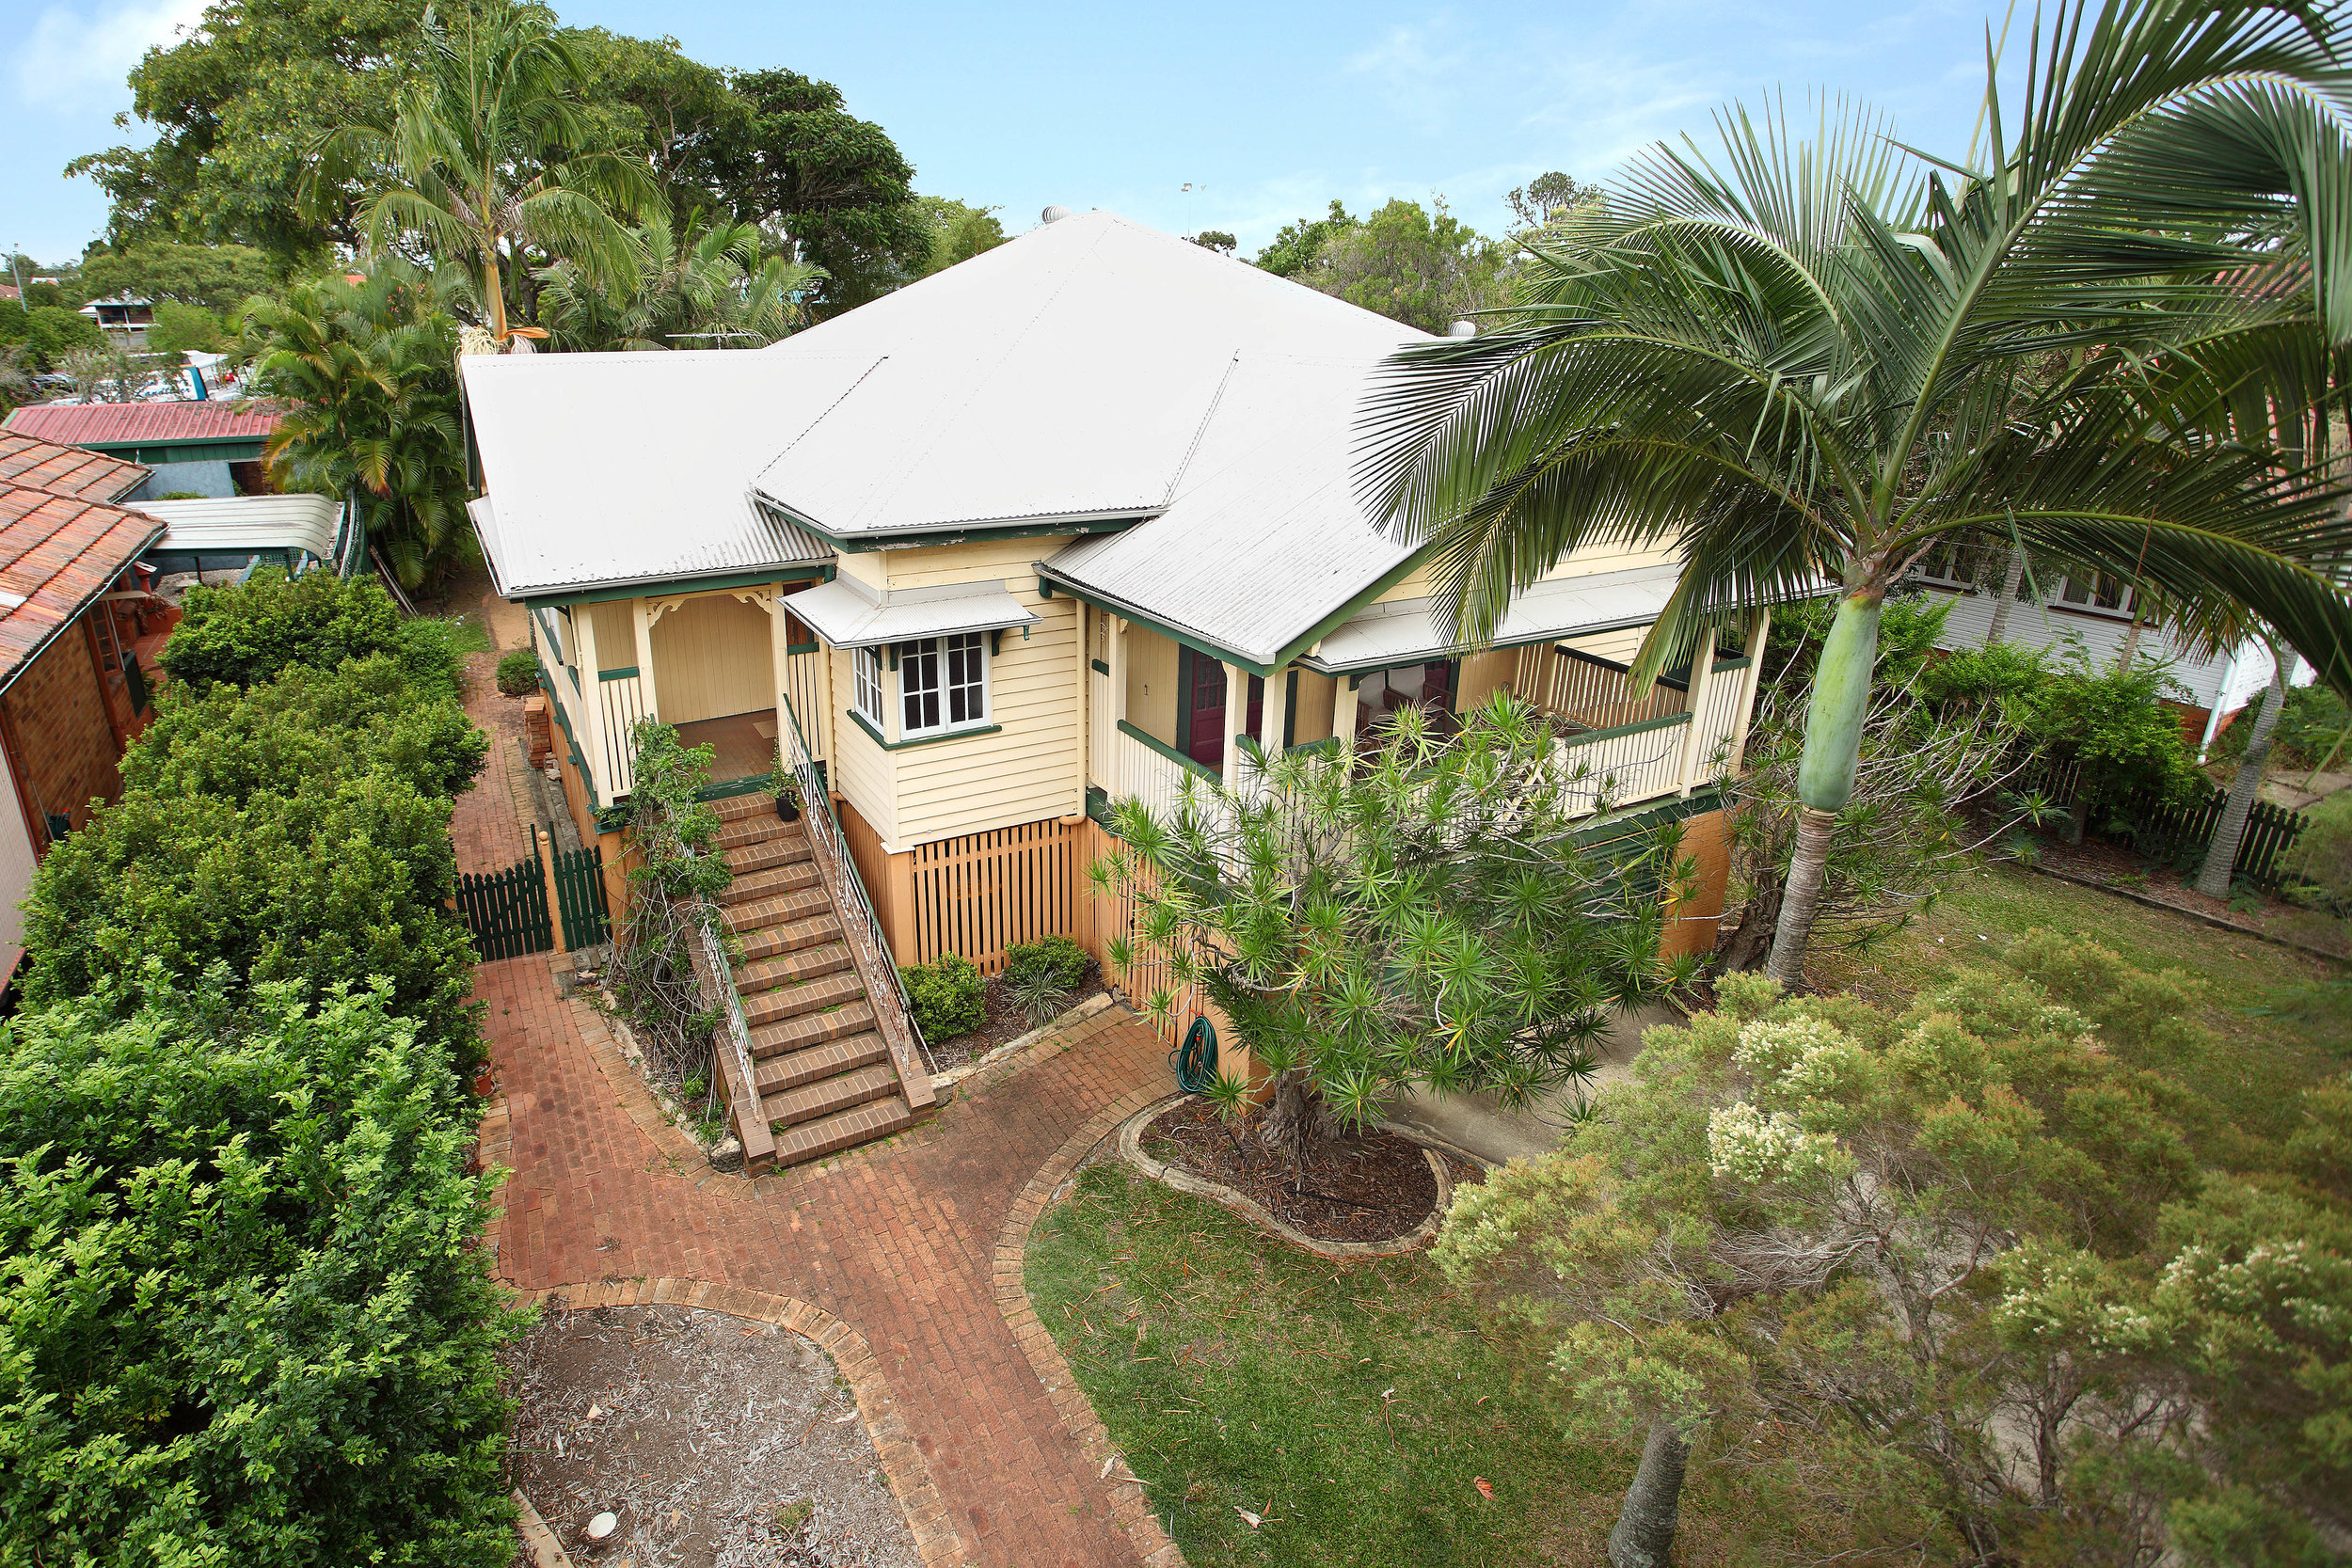 44 Gallagher Terrace, KedronSold: $950,000 -